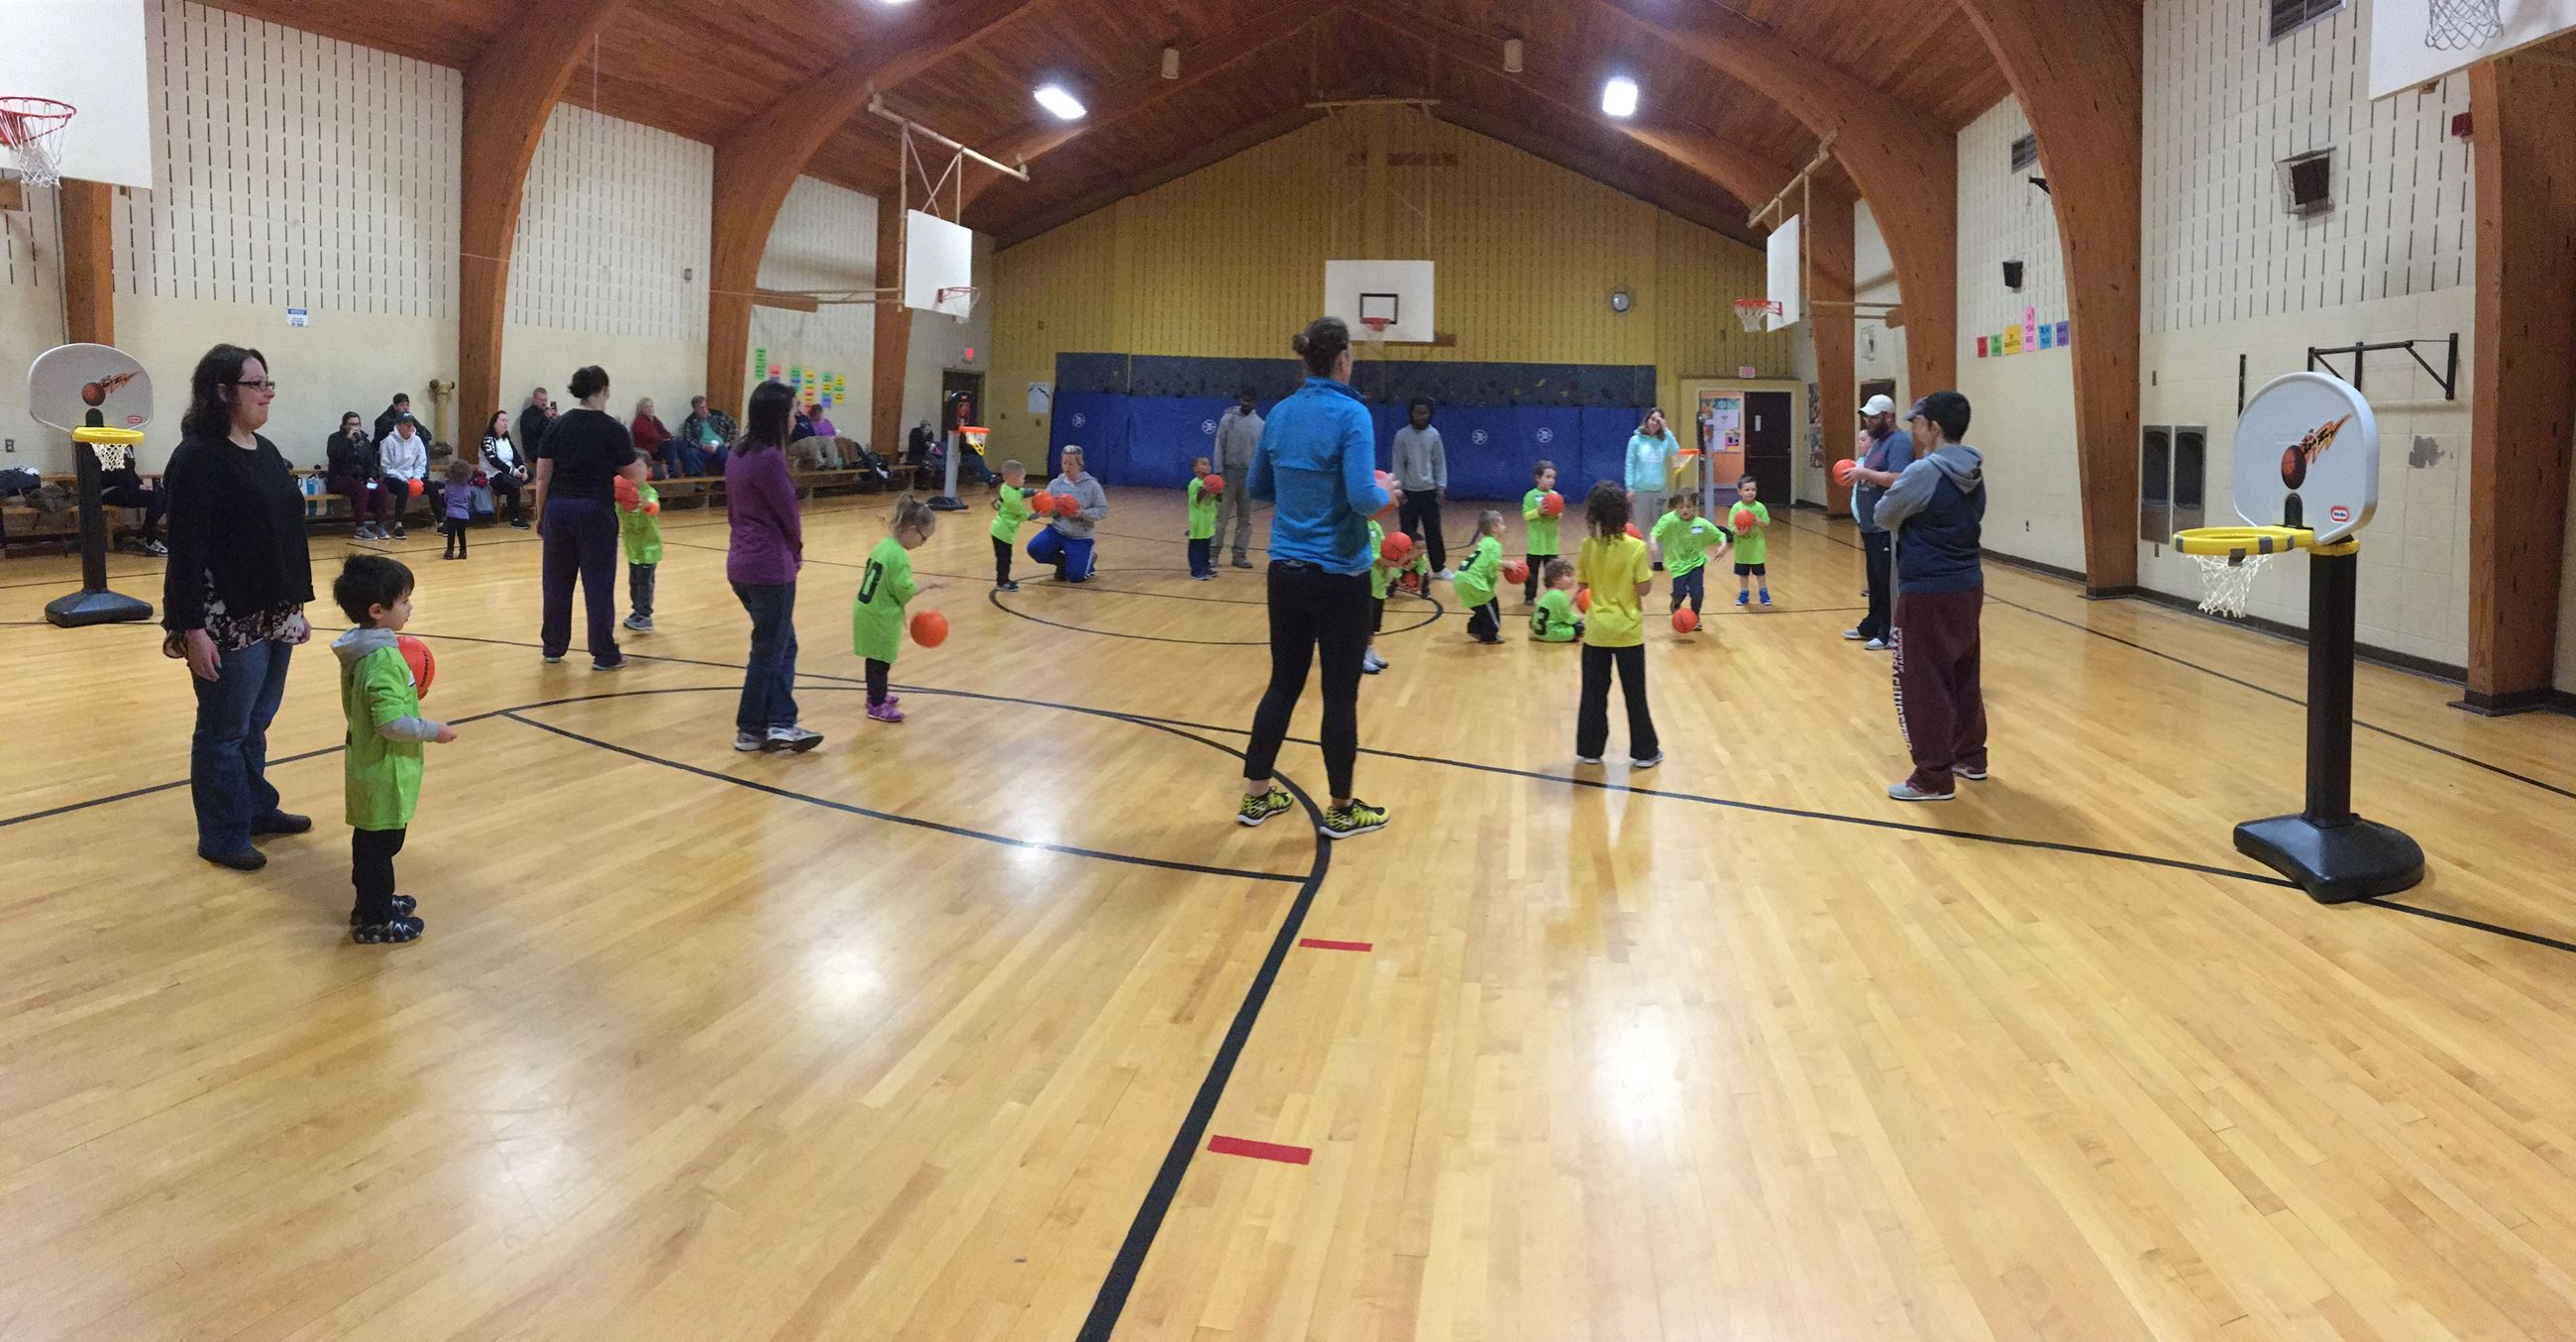 Preschoolers at practice in a gym